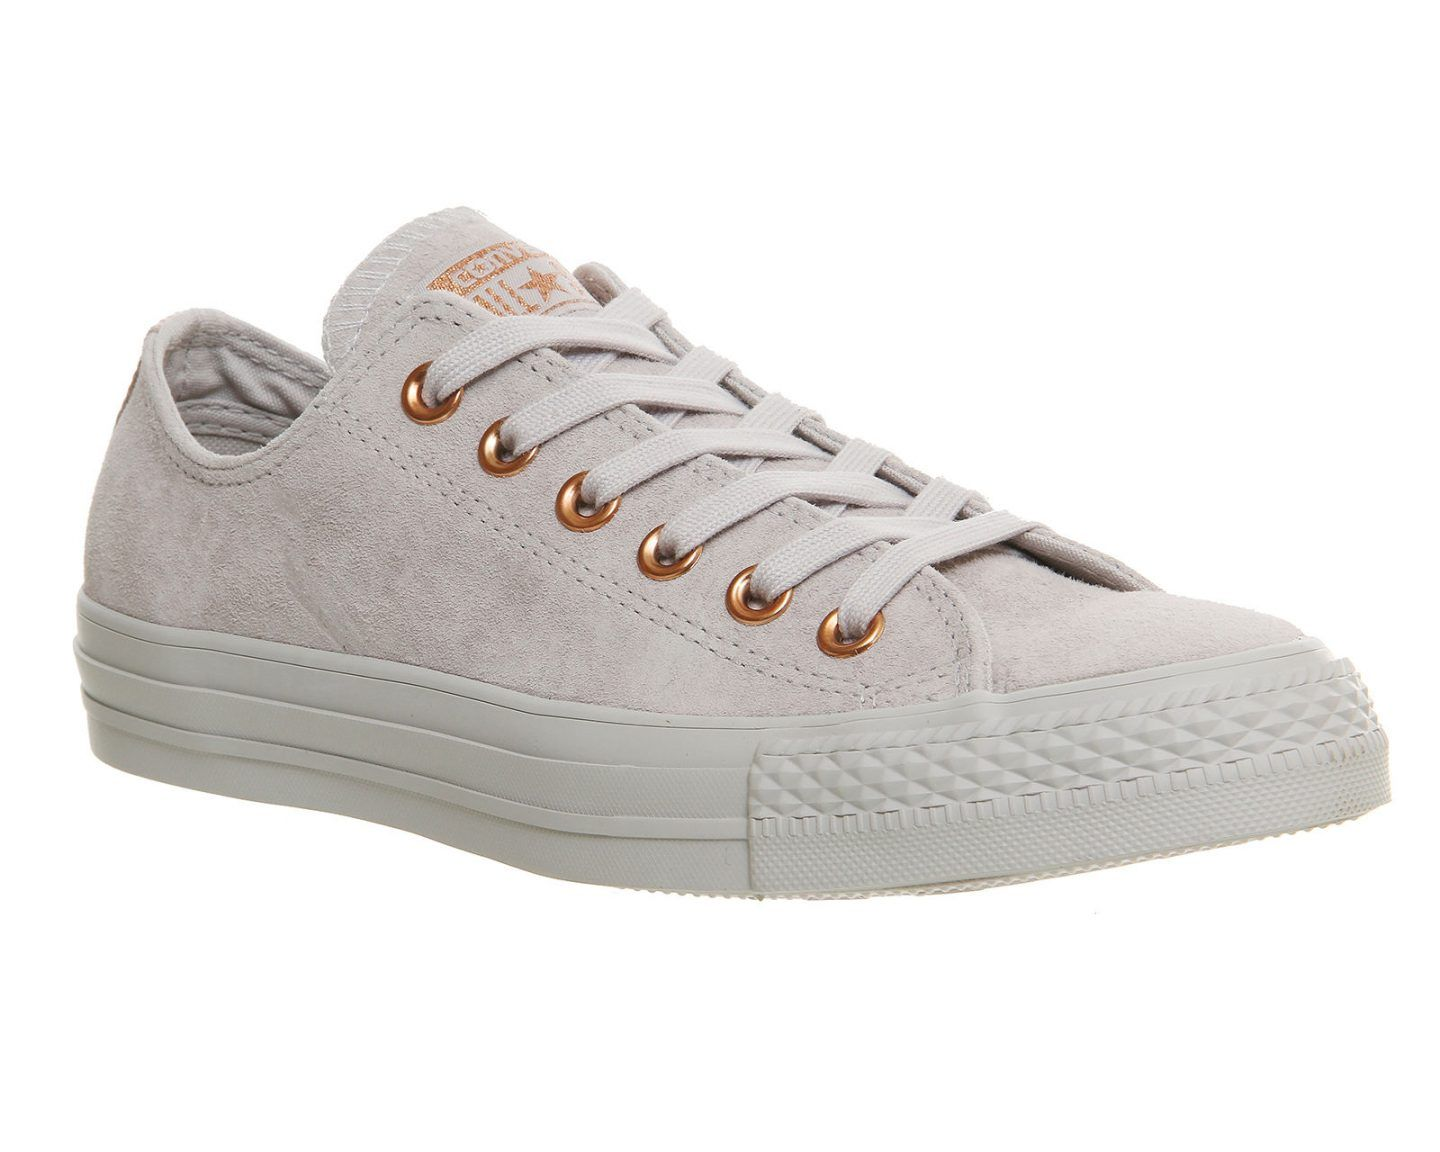 Shop The NEW Converse Spring Blossom & Nude Collection!! - Erica Matthews